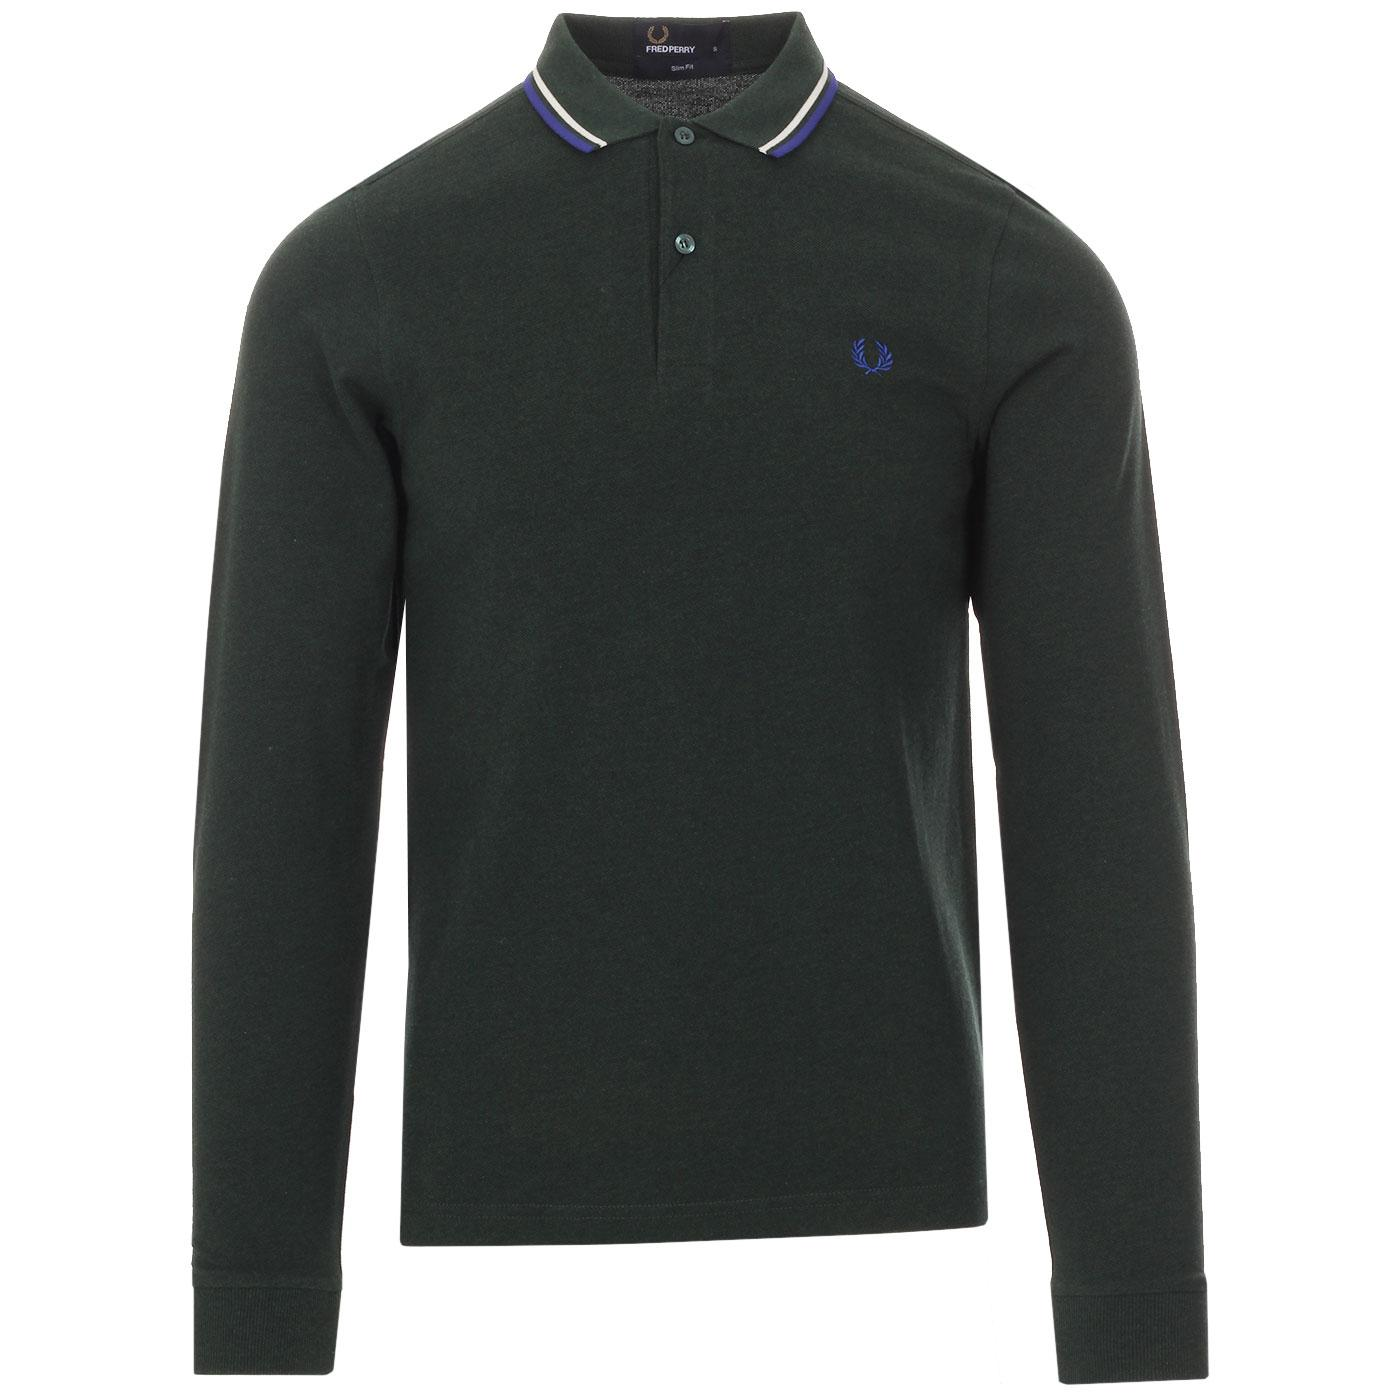 FRED PERRY Men's LS Mod Twin Tipped Pique Polo IVY